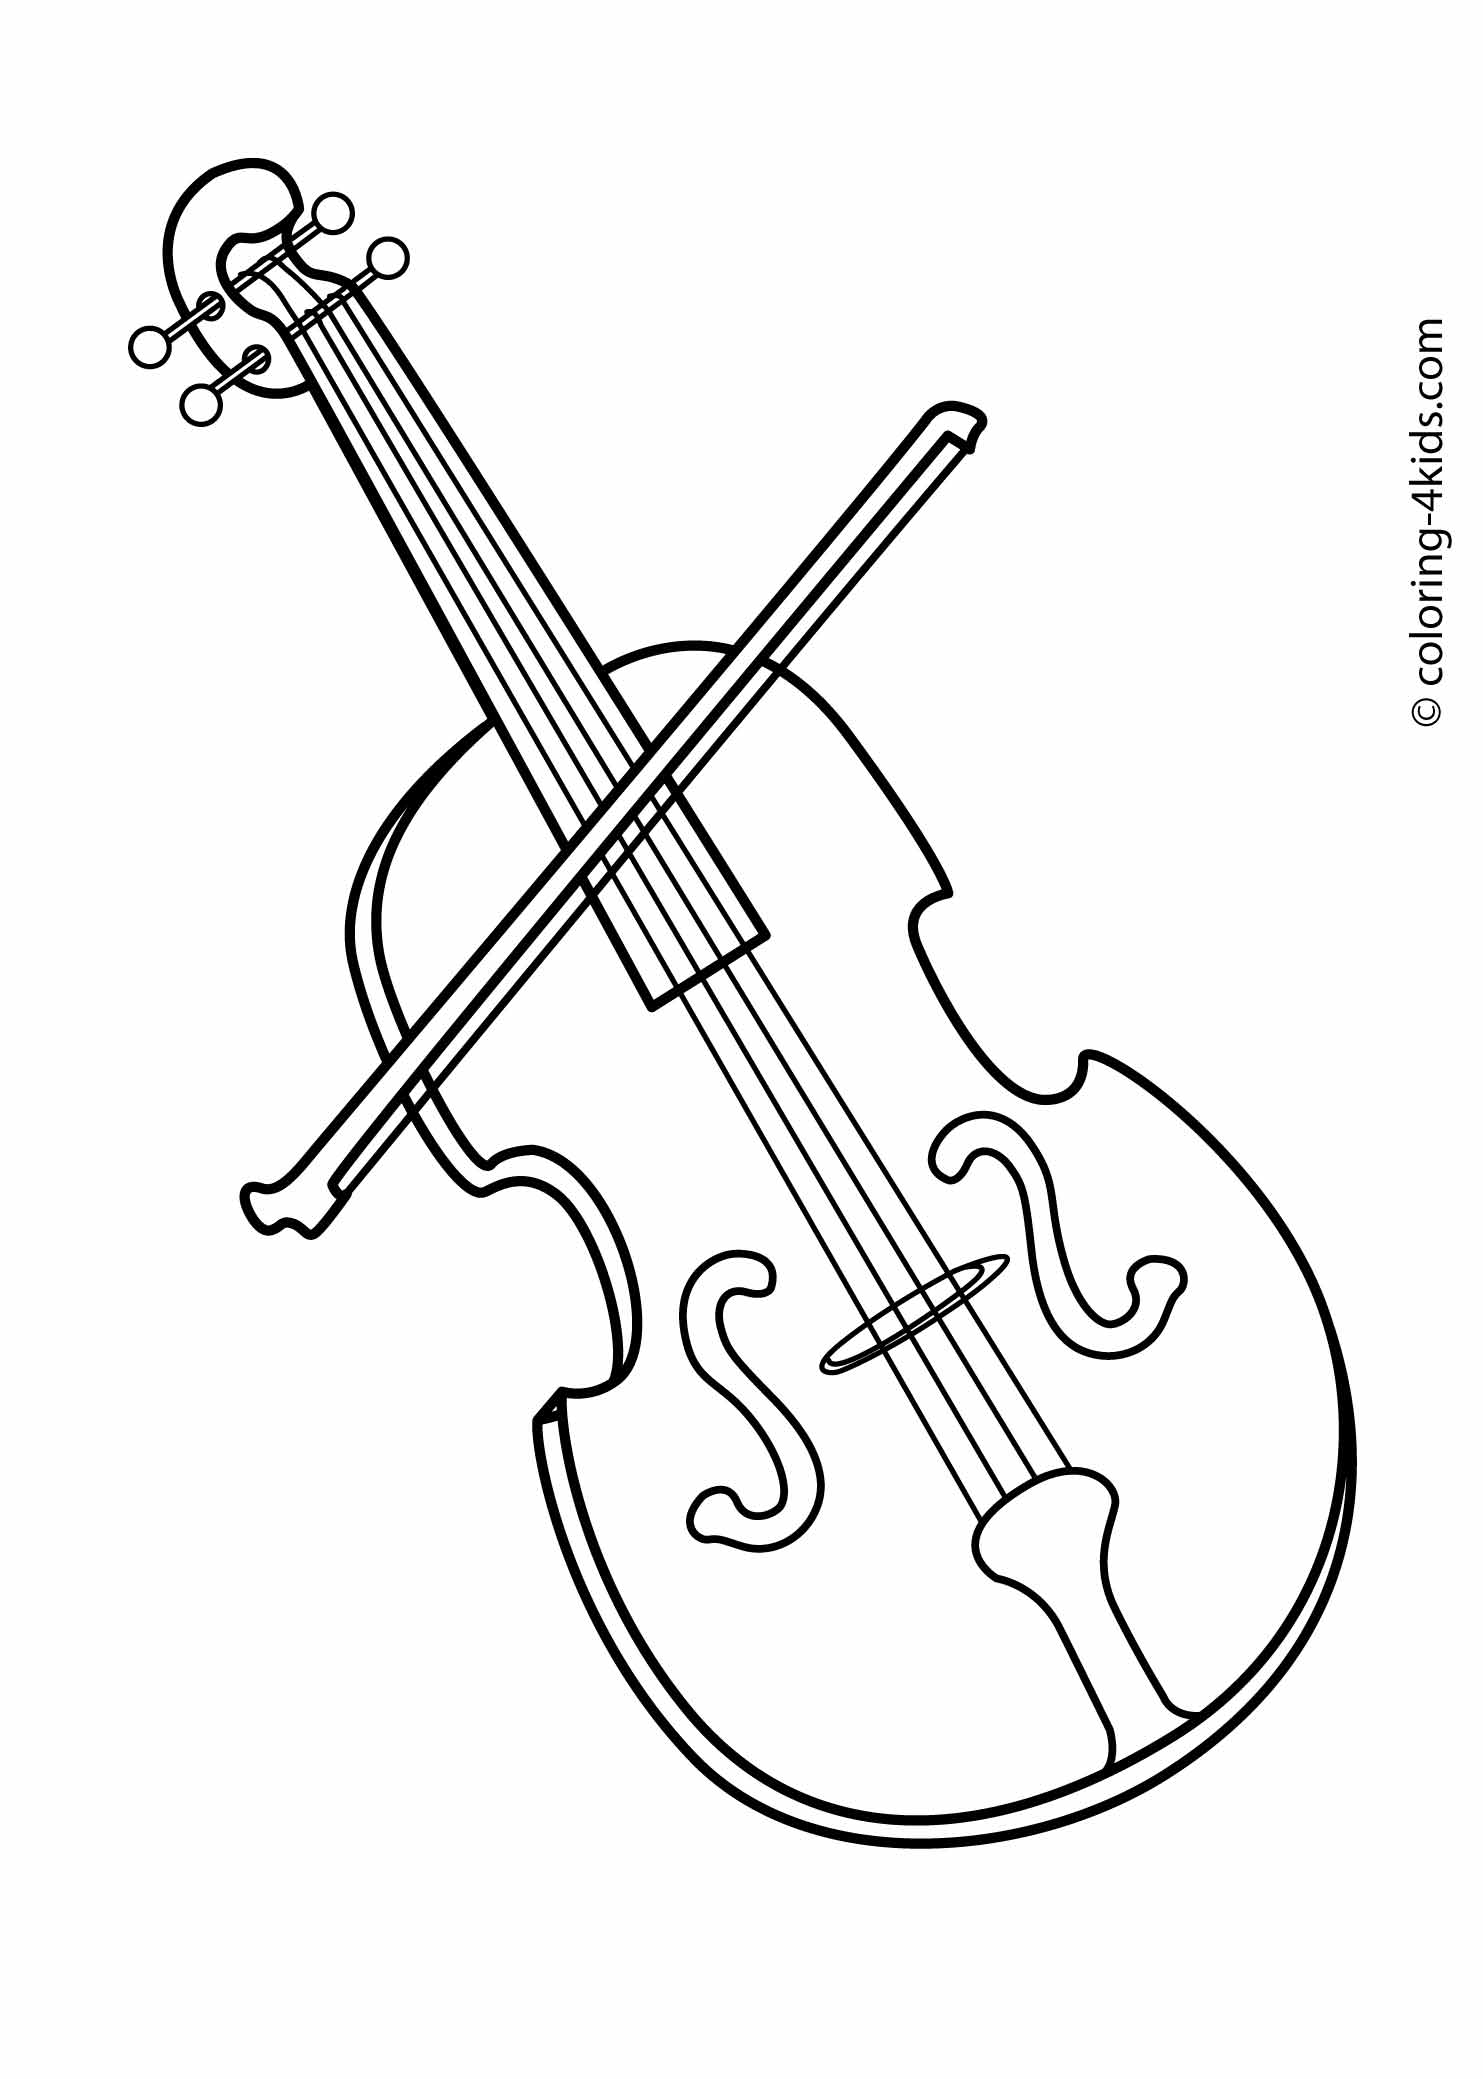 Free printable coloring pages of musical instruments